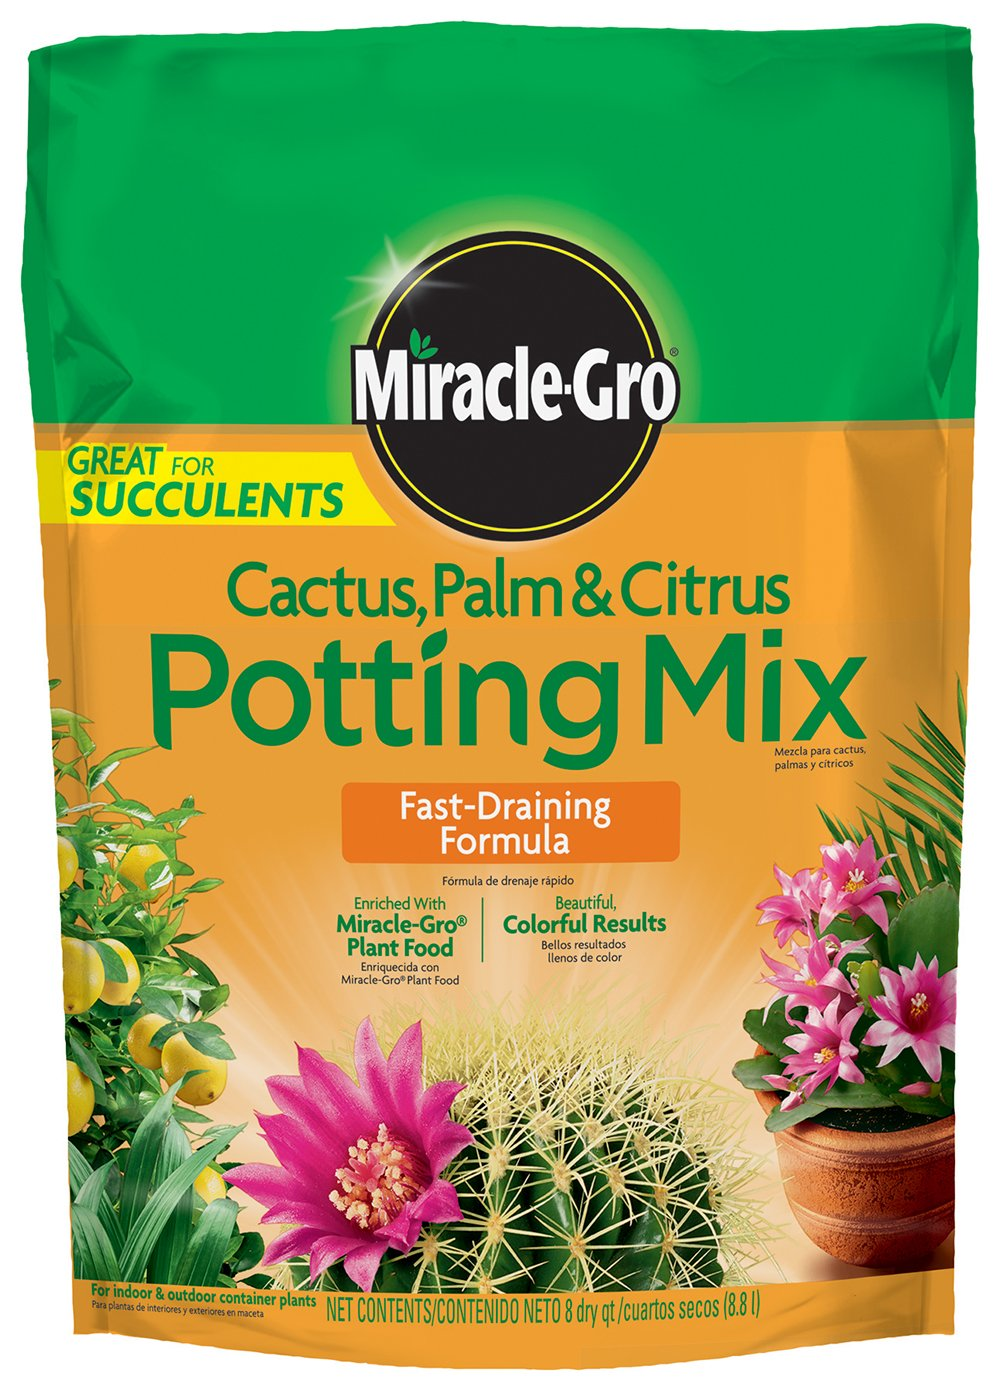 Miracle-Gro Cactus Palm and Citrus Potting Mix, 8-Quart (currently ships to select Northeastern & Midwestern states)